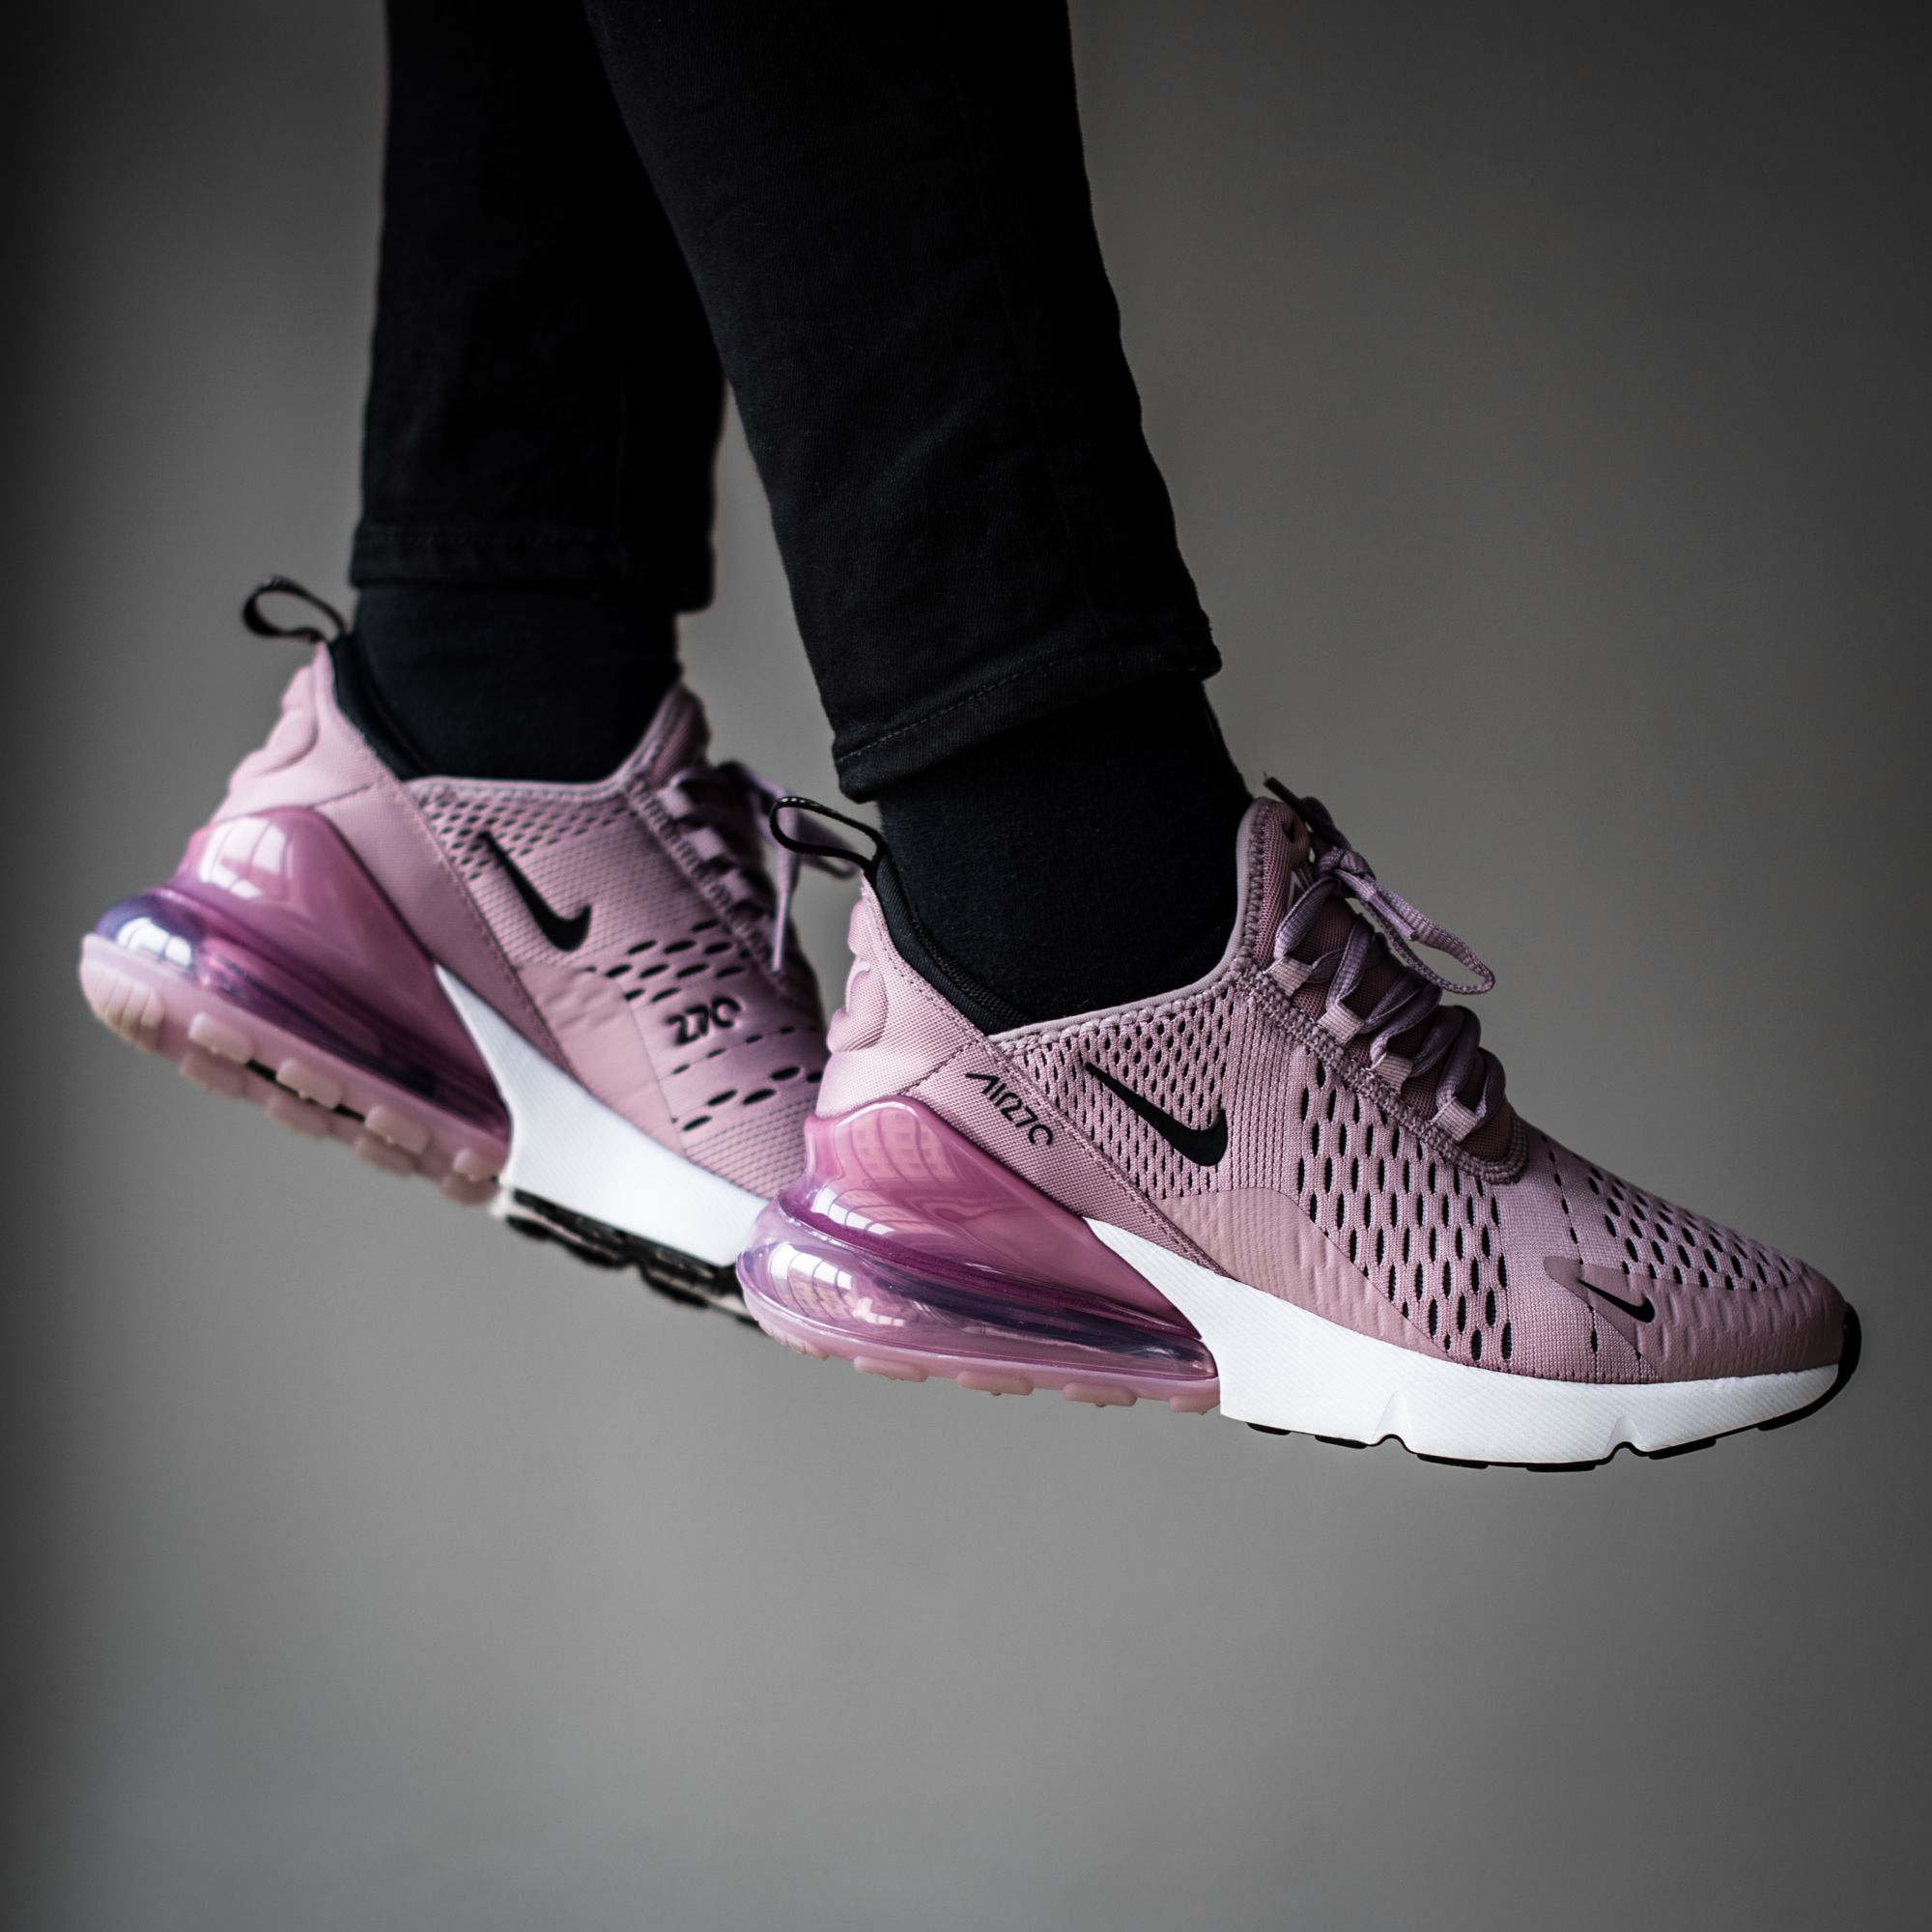 The Air Max 270 in a purple coloring is soon available on kickz.com ... d6968aa5ac